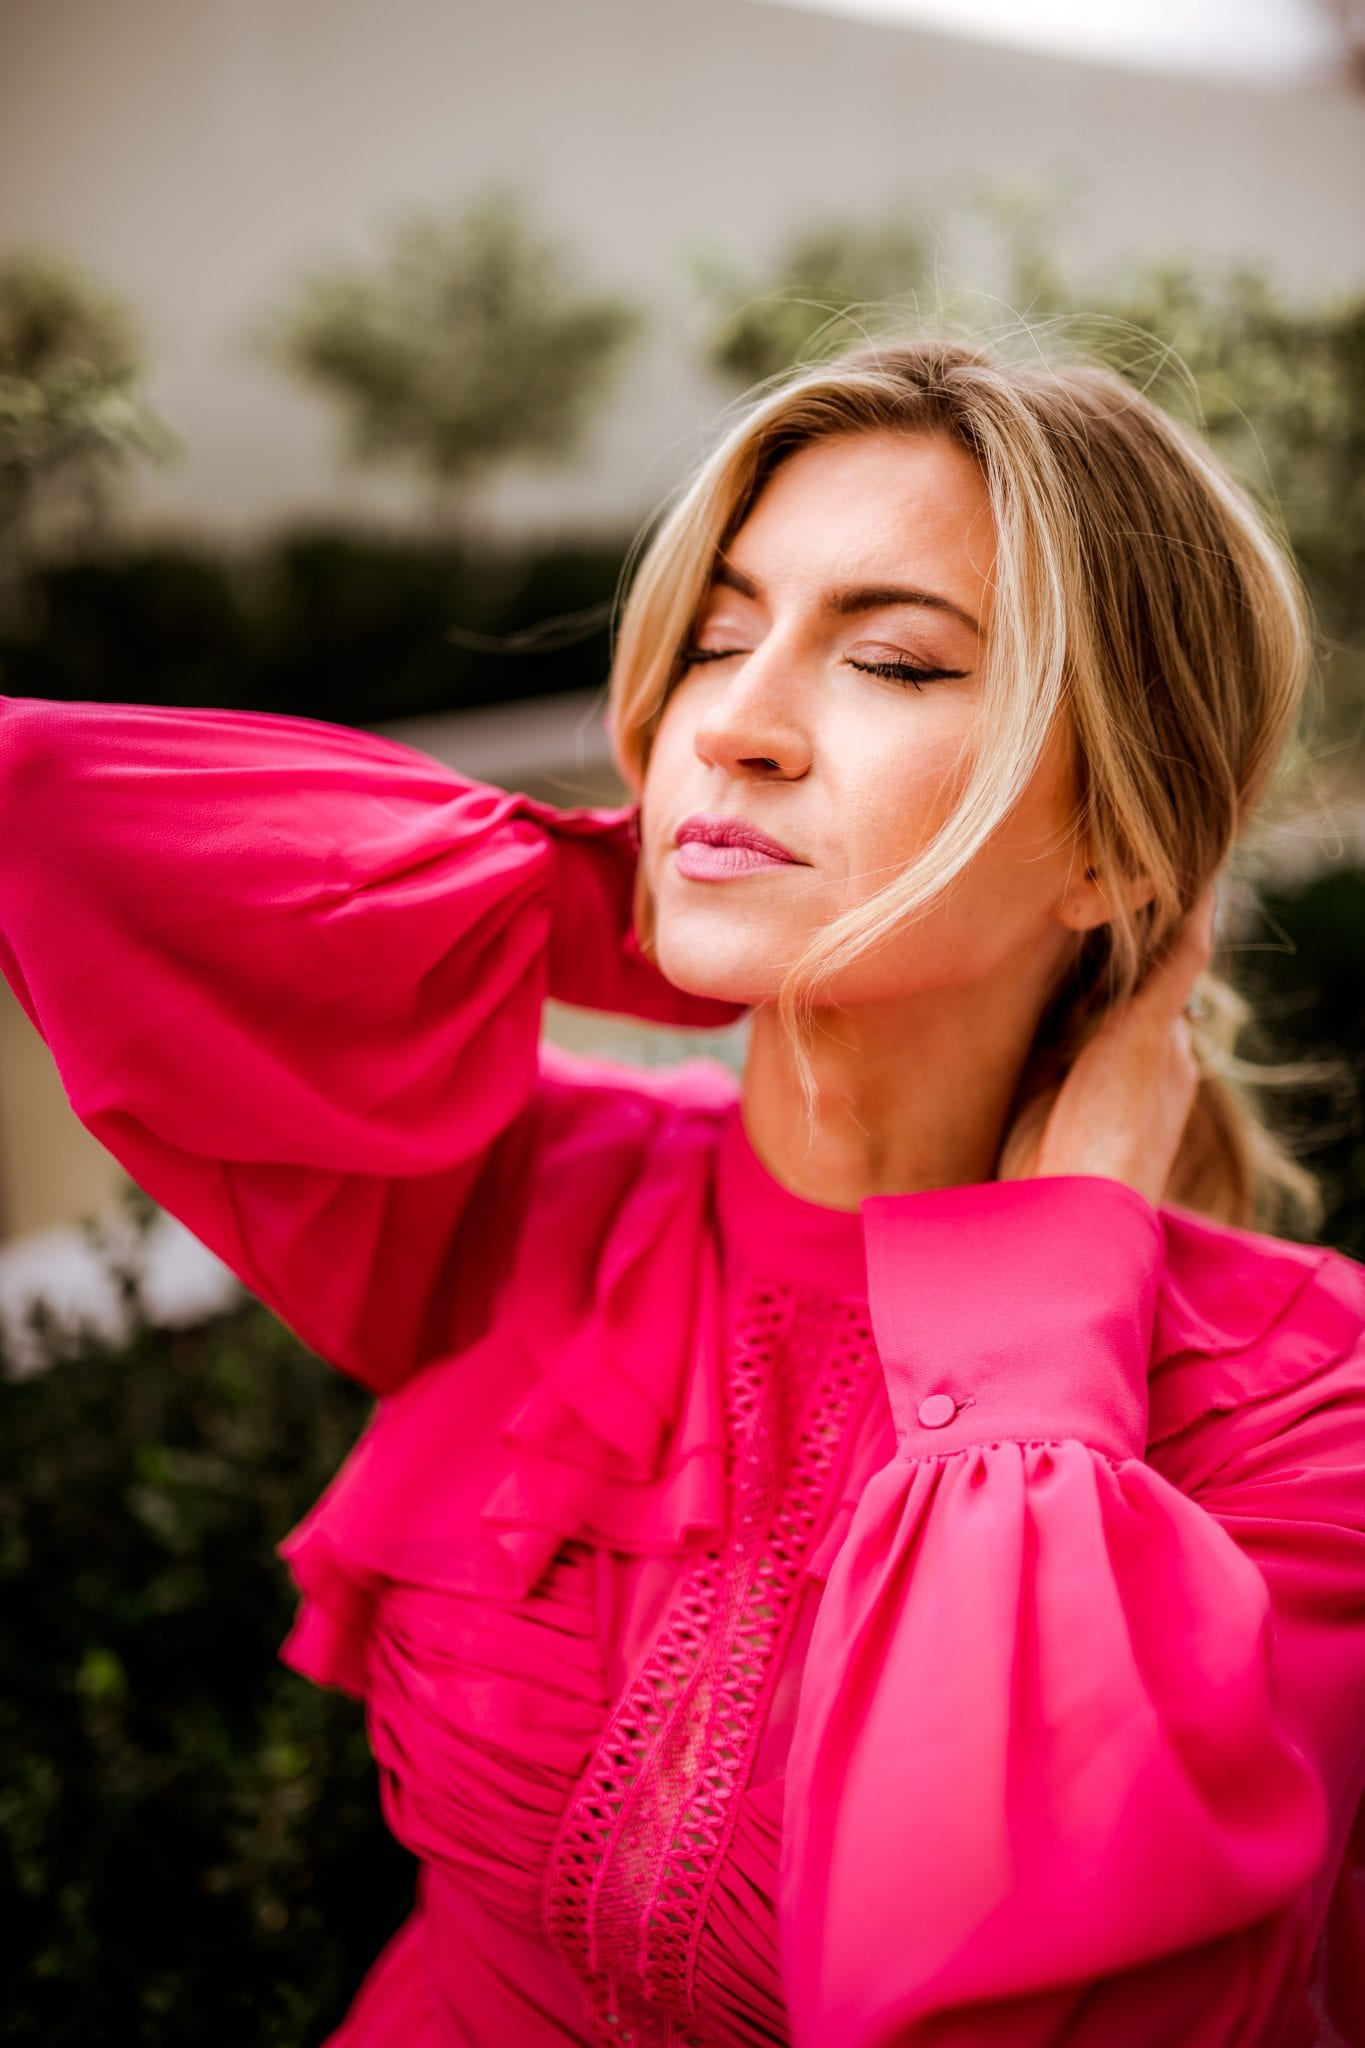 THE HOT PINK TREND FOR SPRING: MY TOP 6 PICKS & HOW TO WEAR THEM